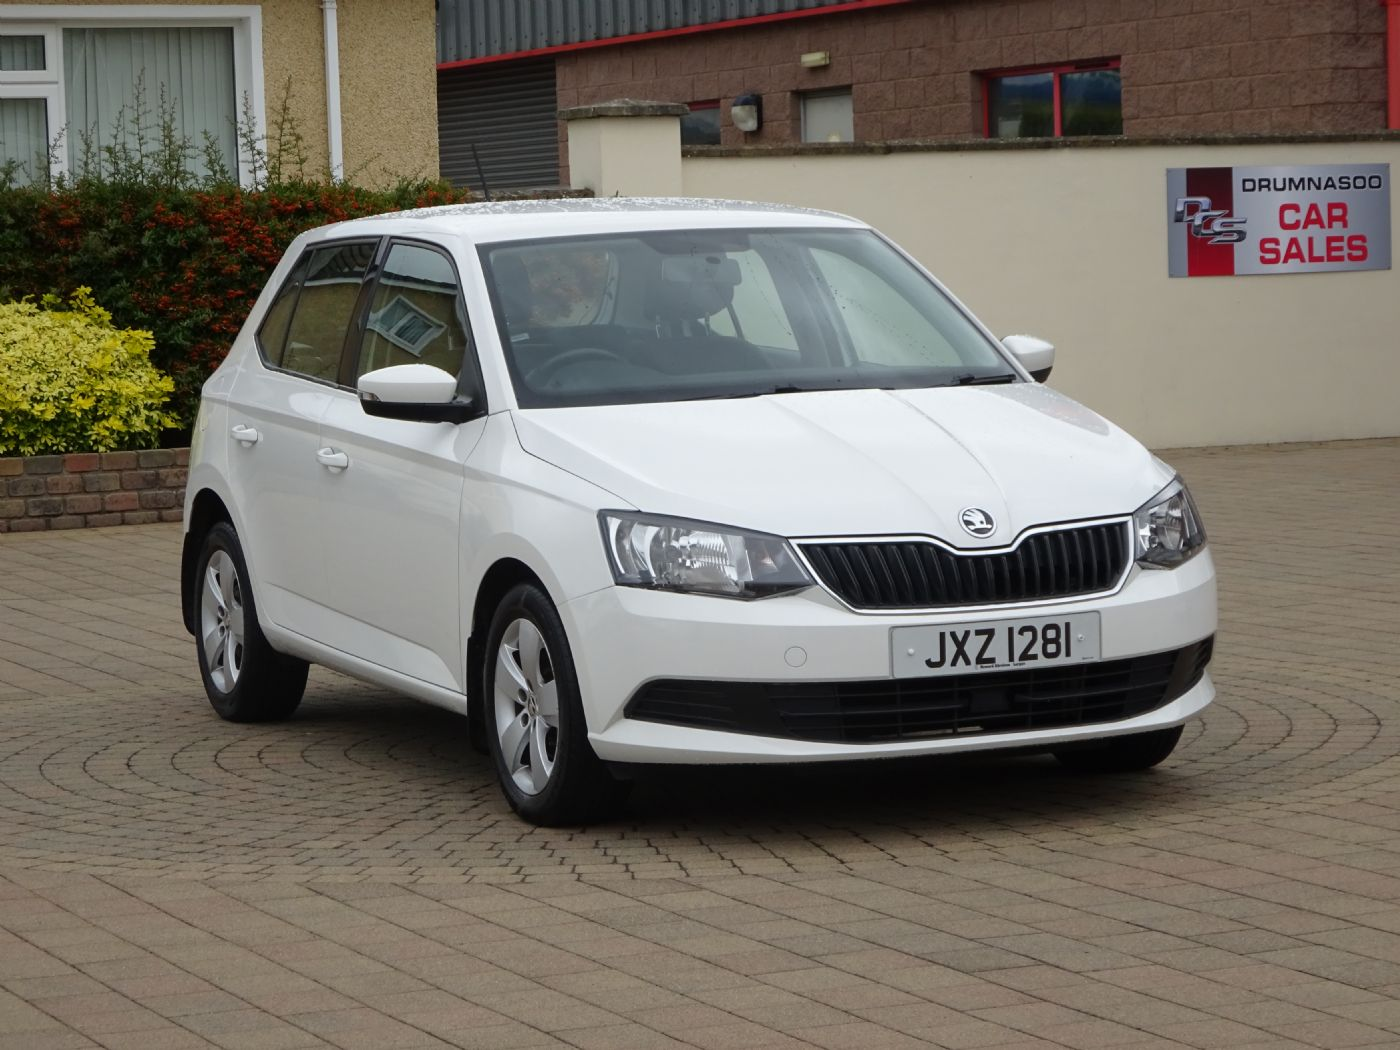 Skoda Fabia 1.0 SE MPI, Rear parking sensors, £20 Road Tax